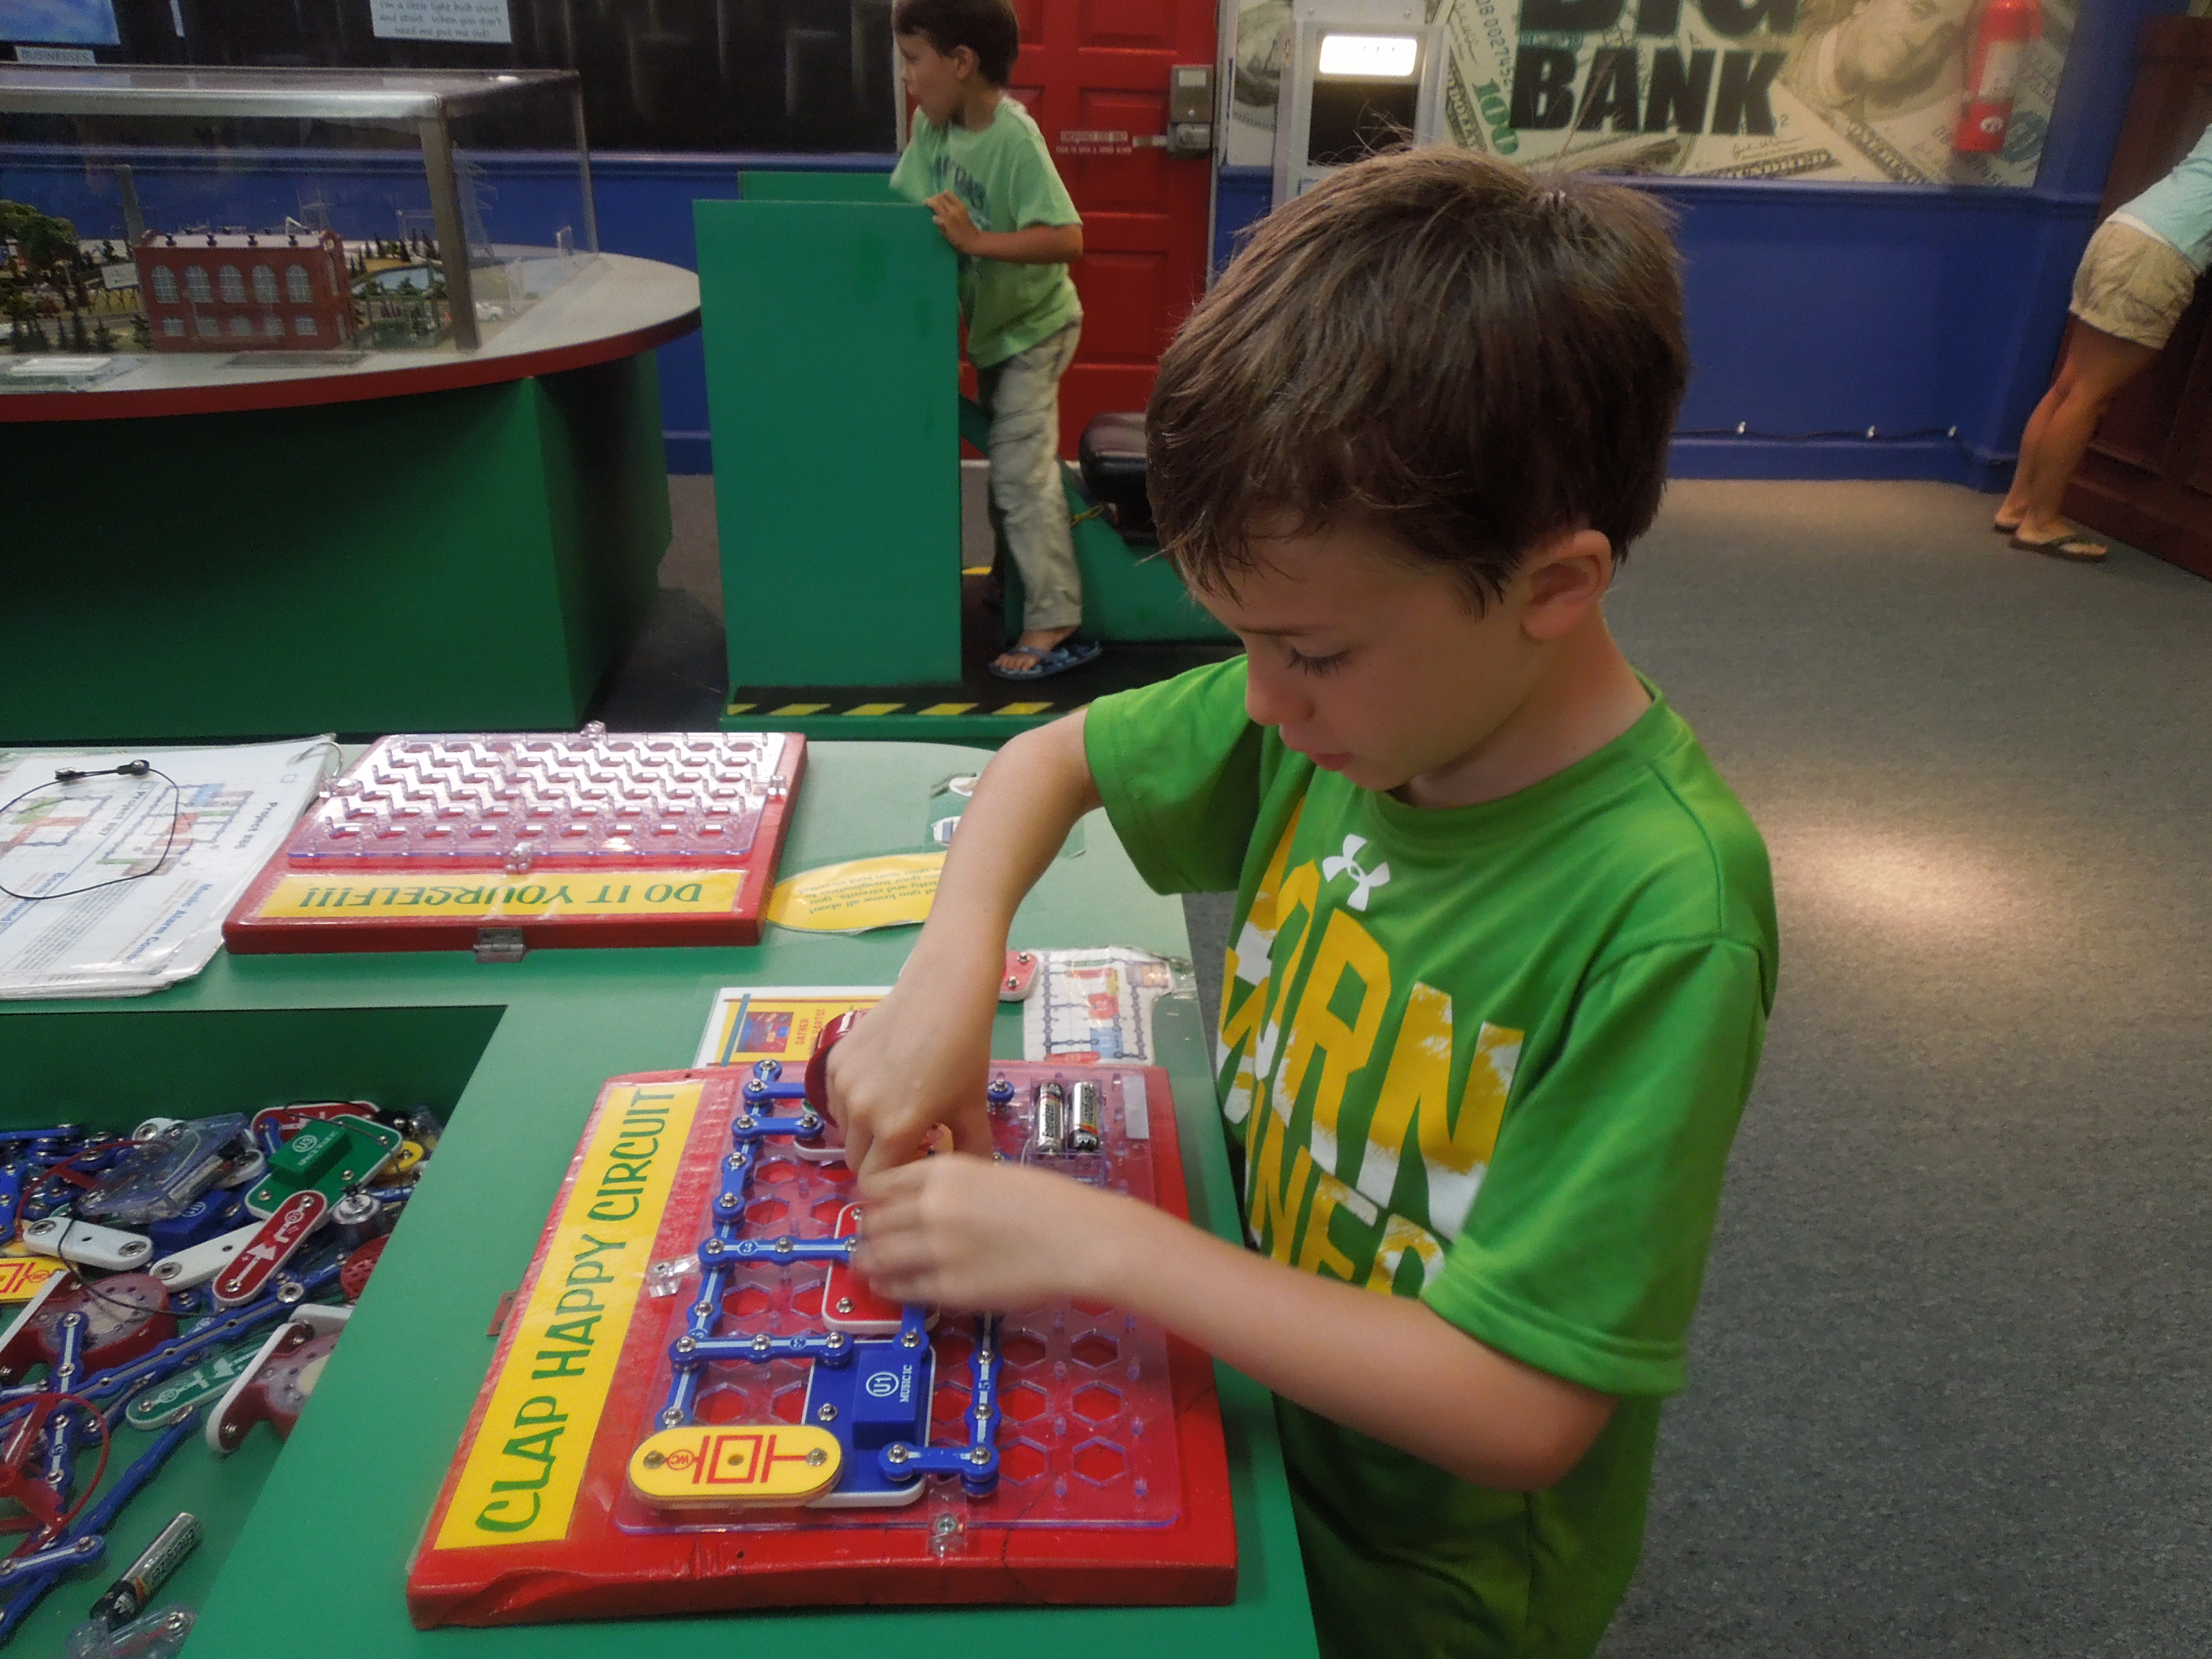 Children's Museum of South Carolina in Myrtle Beach, SC